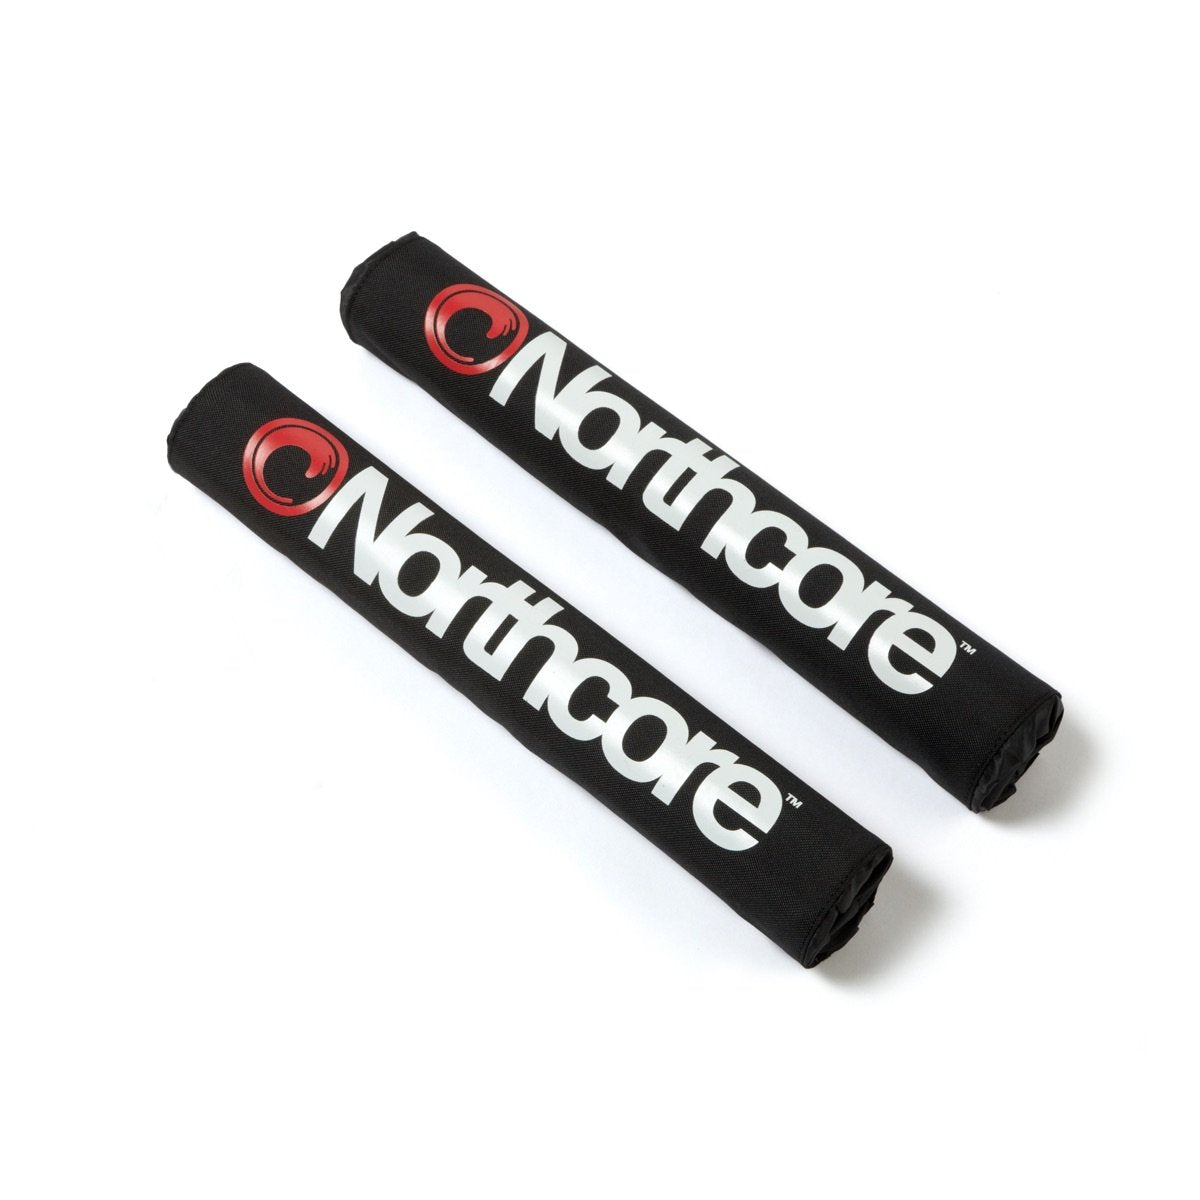 Northcore Roof Bar Pads - Black image